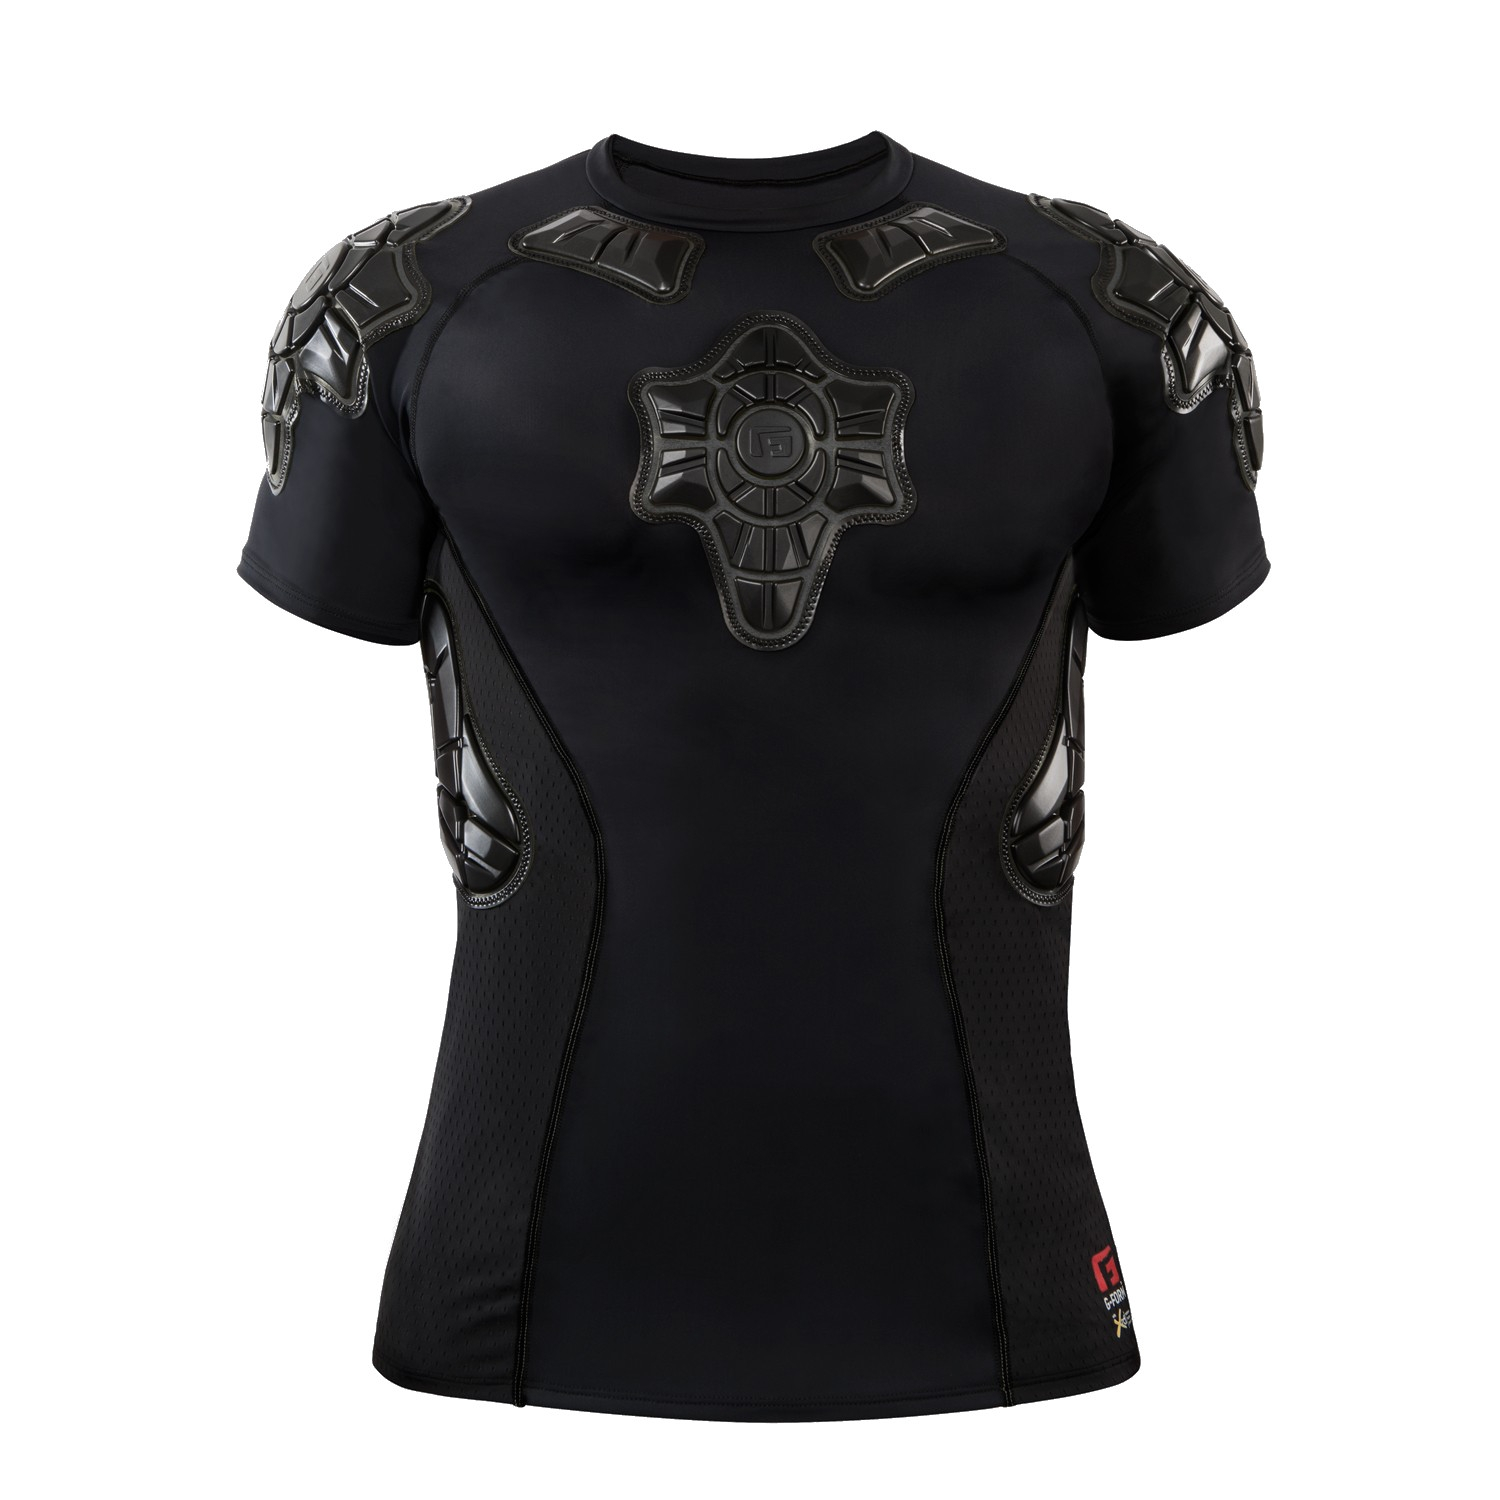 Tee-shirt de protection G-Form Pro-X Noir/Gris - L